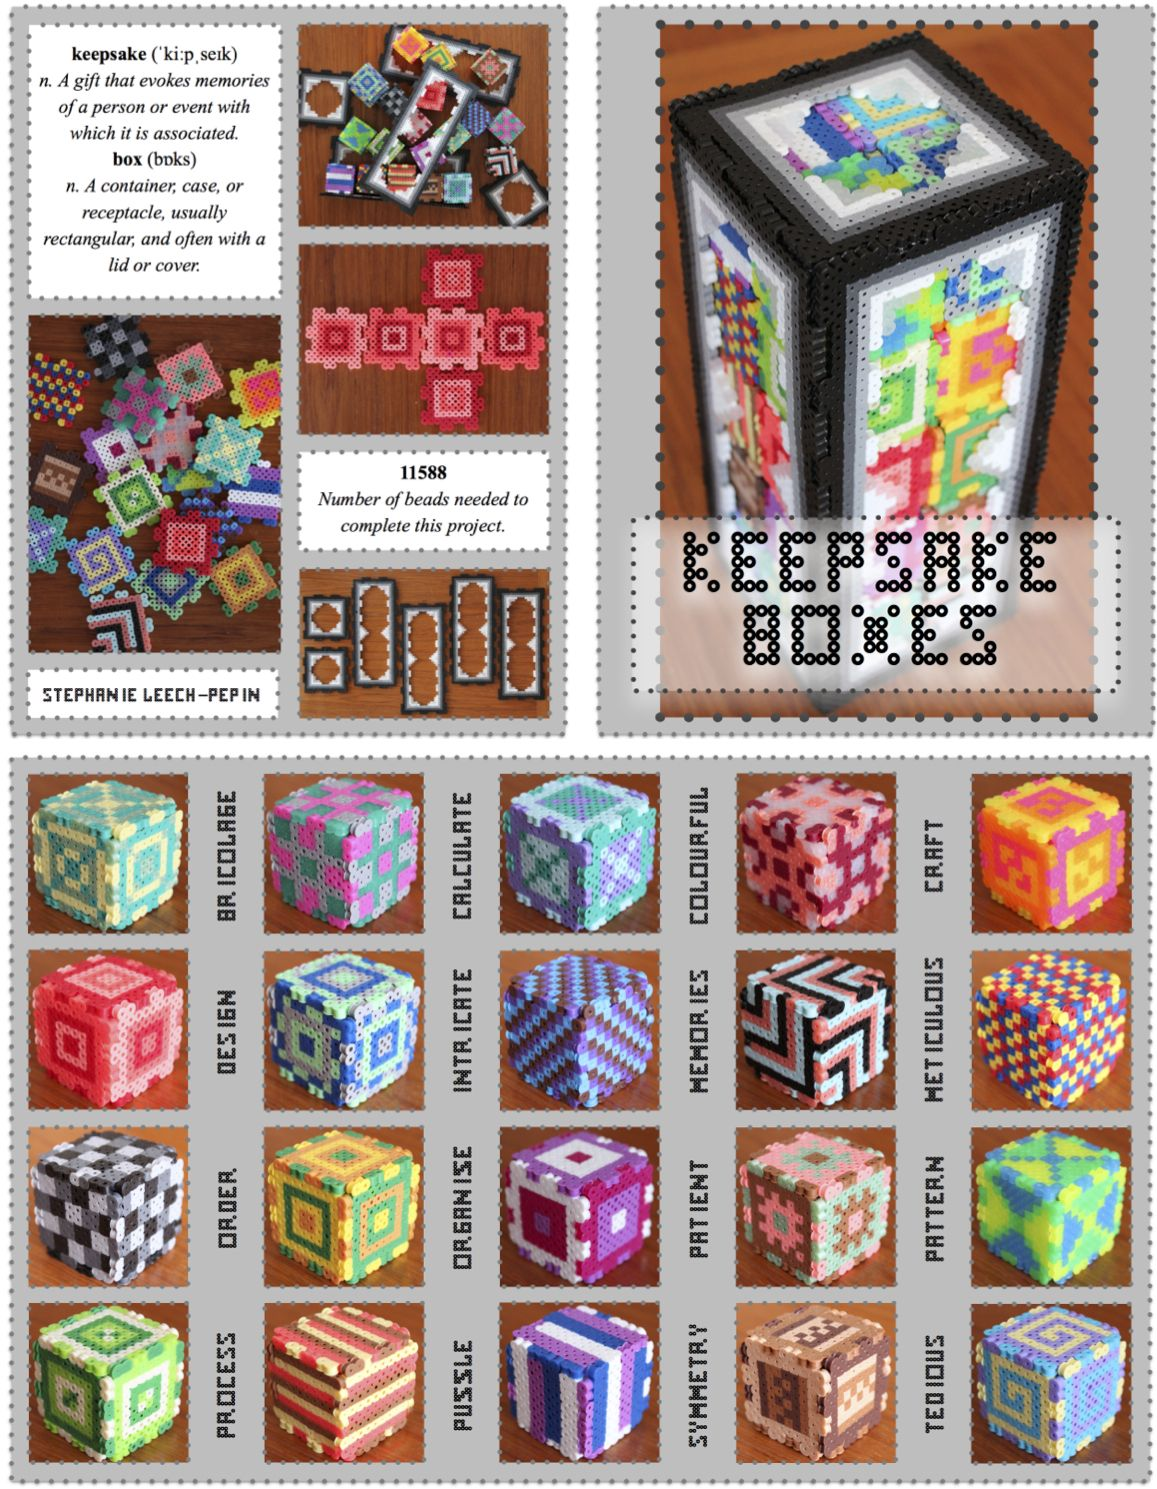 perler bead keepsake boxes so much fun by steph leech pepin [ 1157 x 1489 Pixel ]